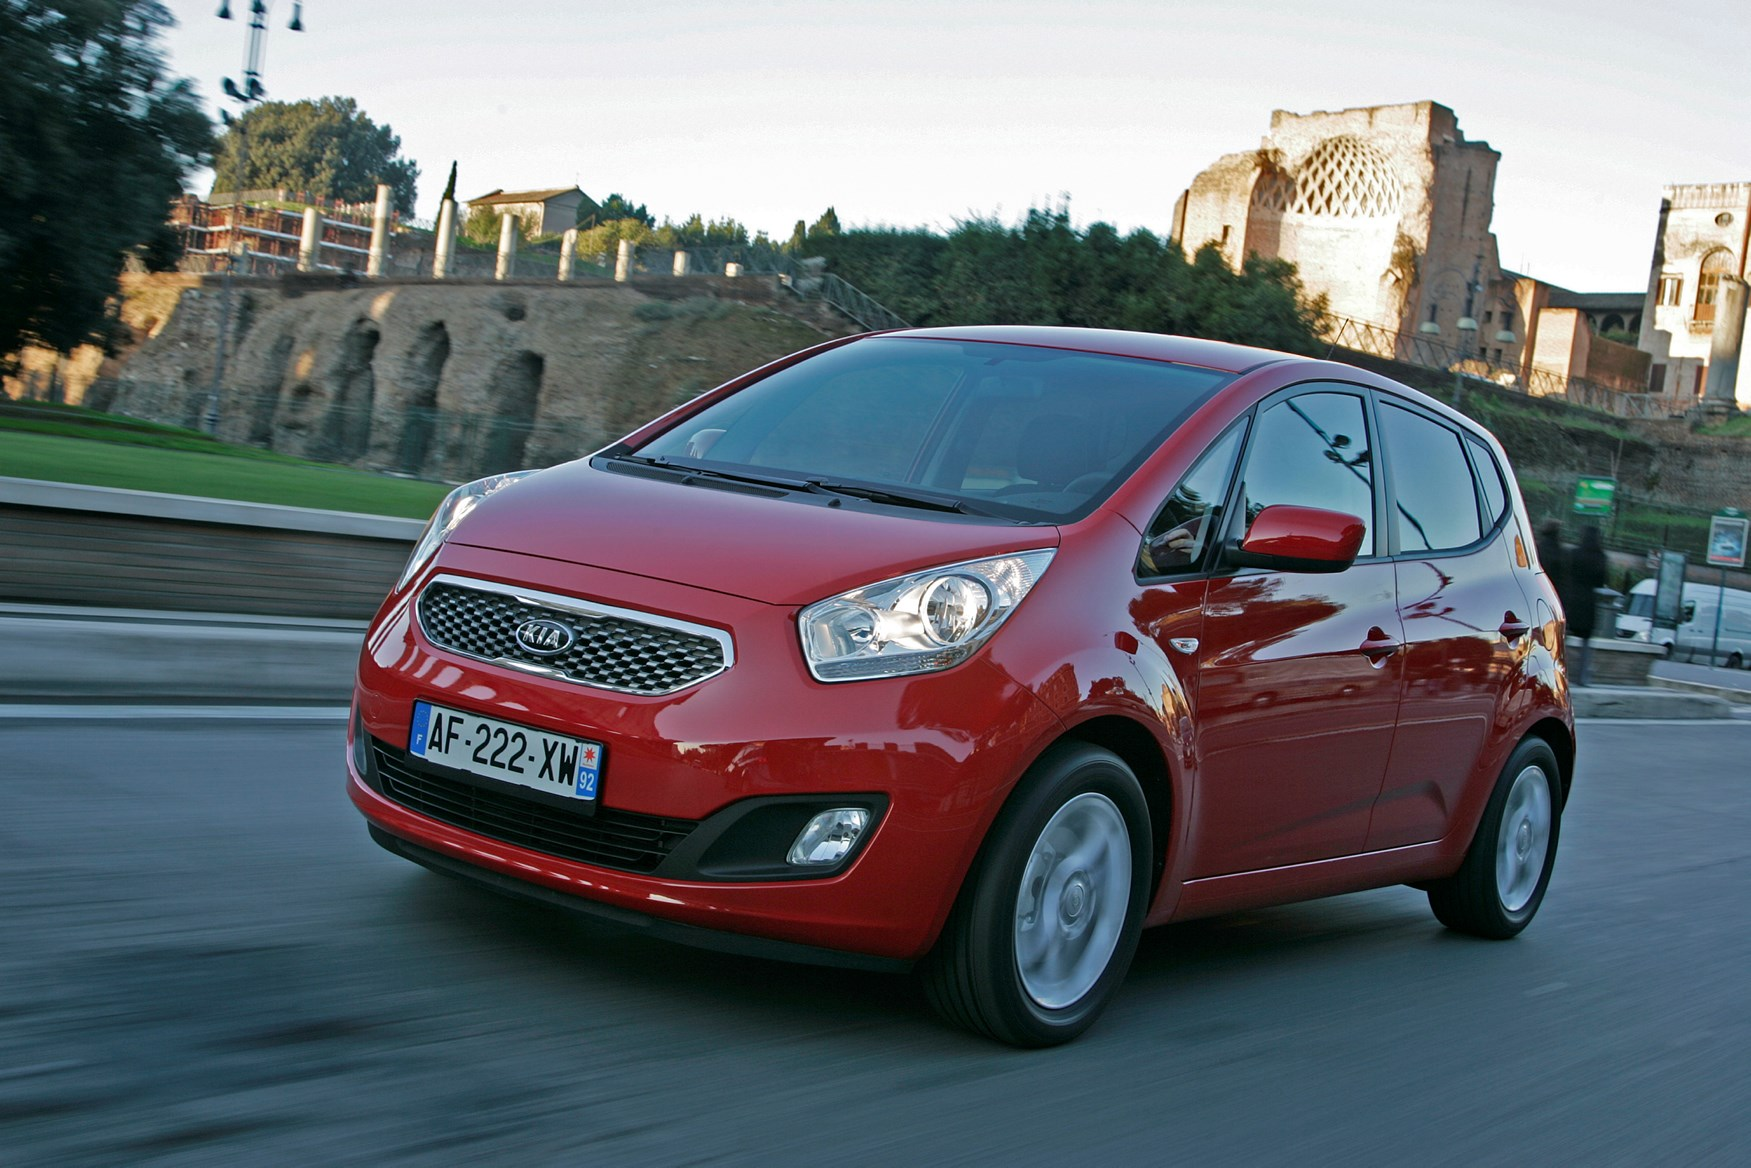 Kia Venga Estate (2010 - ) Photos | Parkers